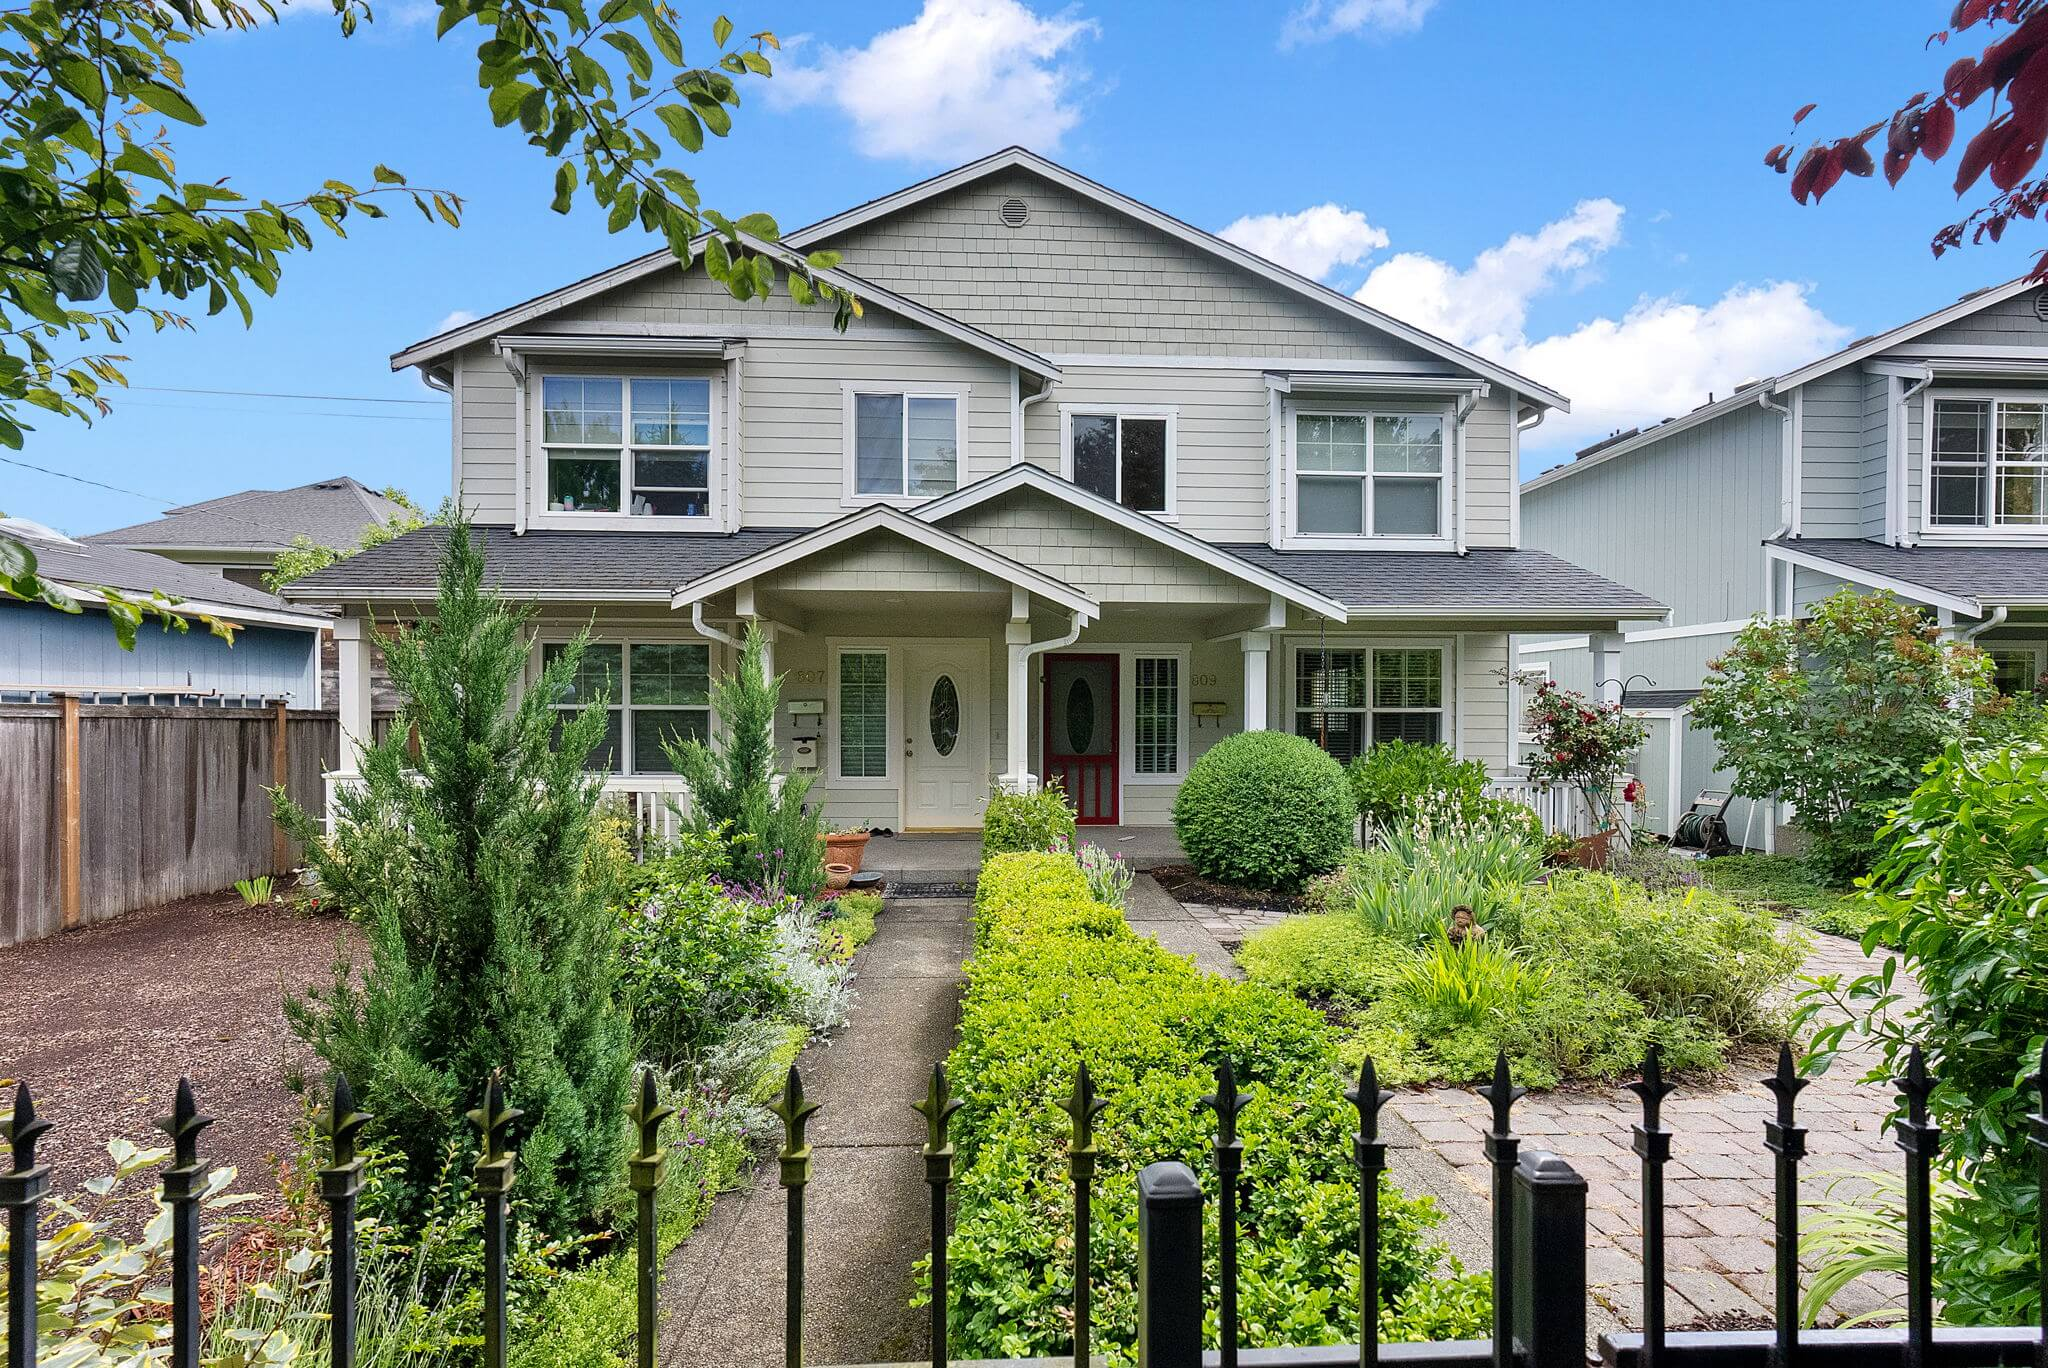 Centrally located attached townhouse built in 2005